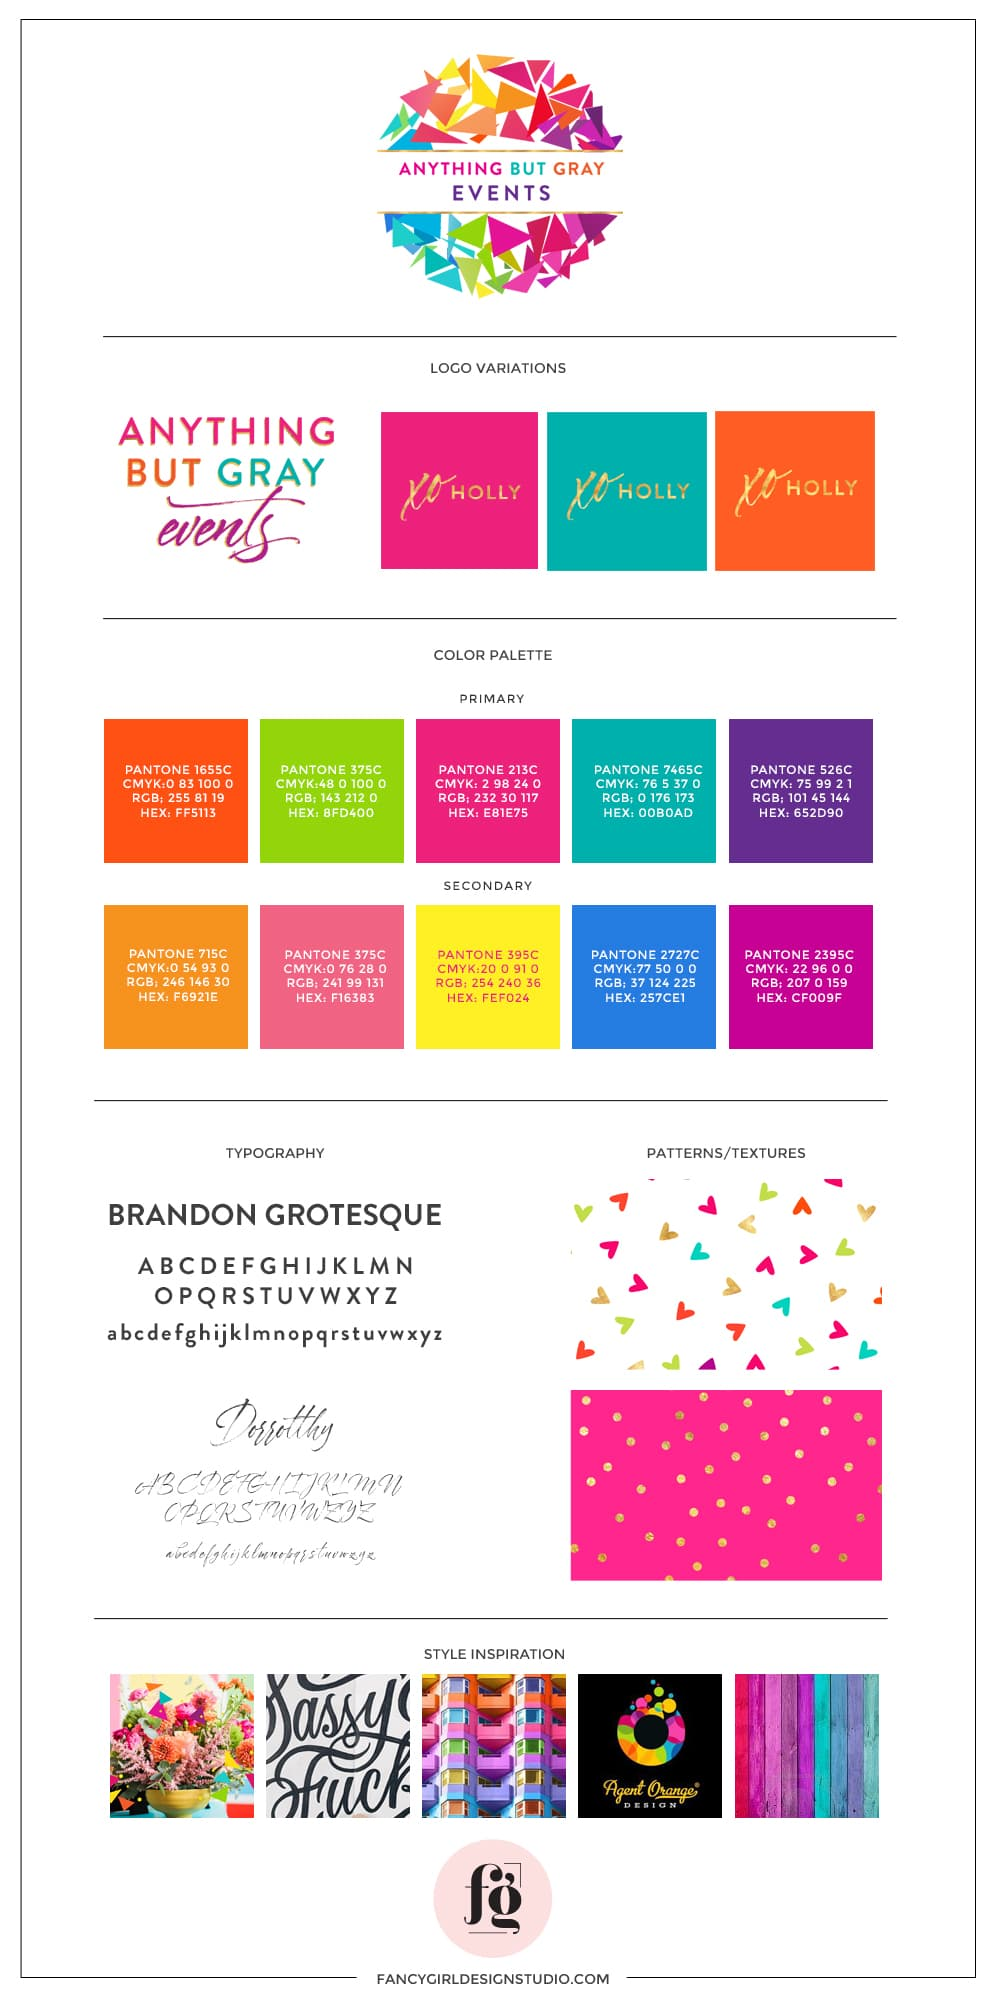 brand style guide for anything but gray events by fancy girl design studio